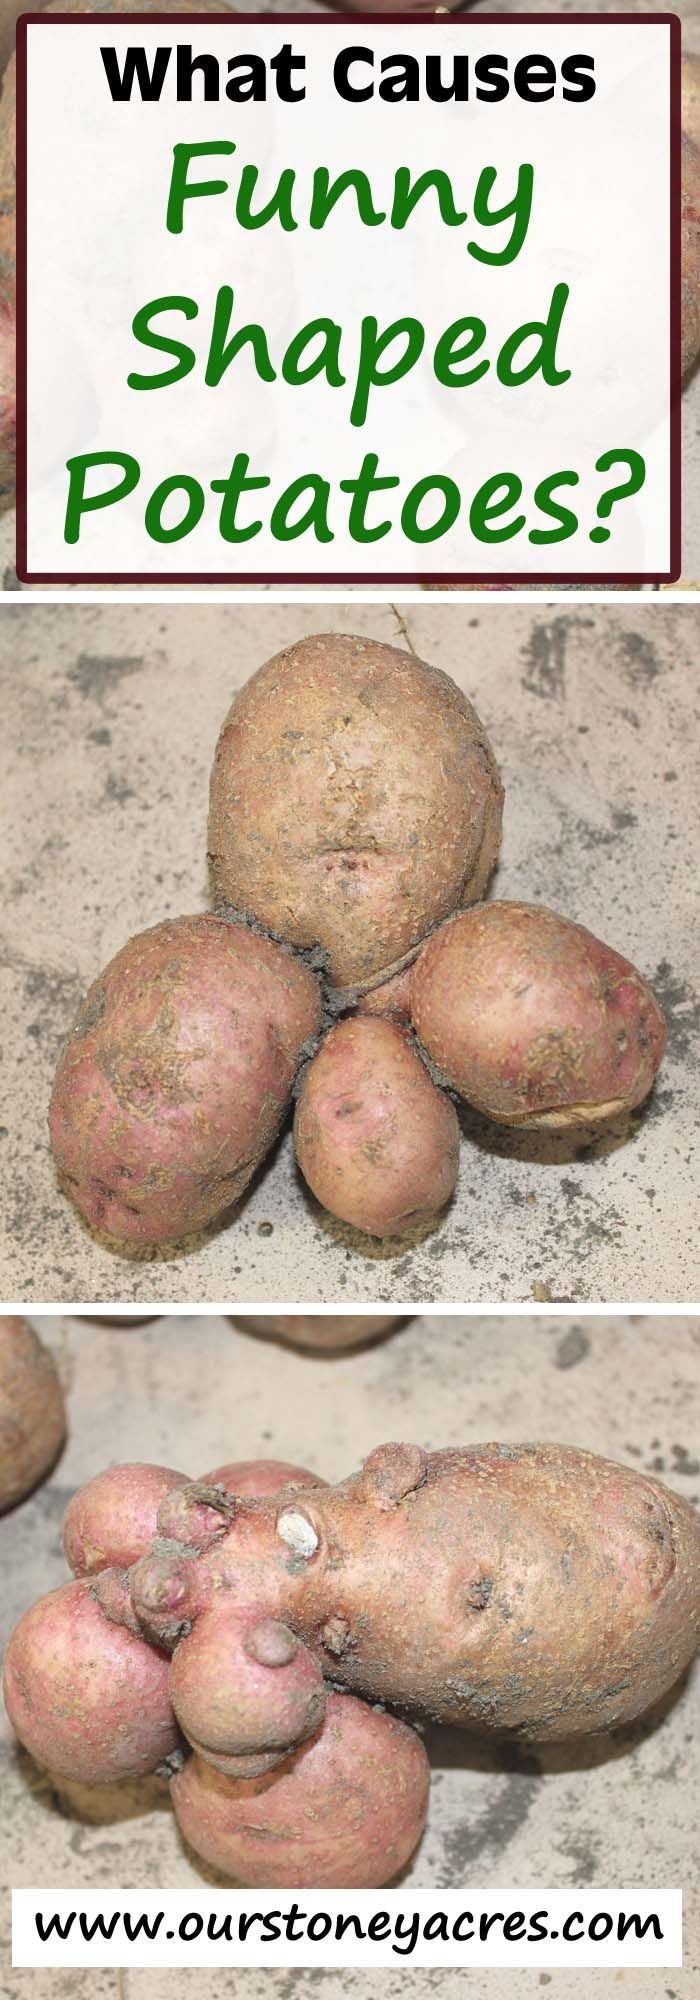 Weeds in flower beds with potato like roots - Why Did You Grow So Many Funny Shaped Potatoes You See The Pictures Floating Around